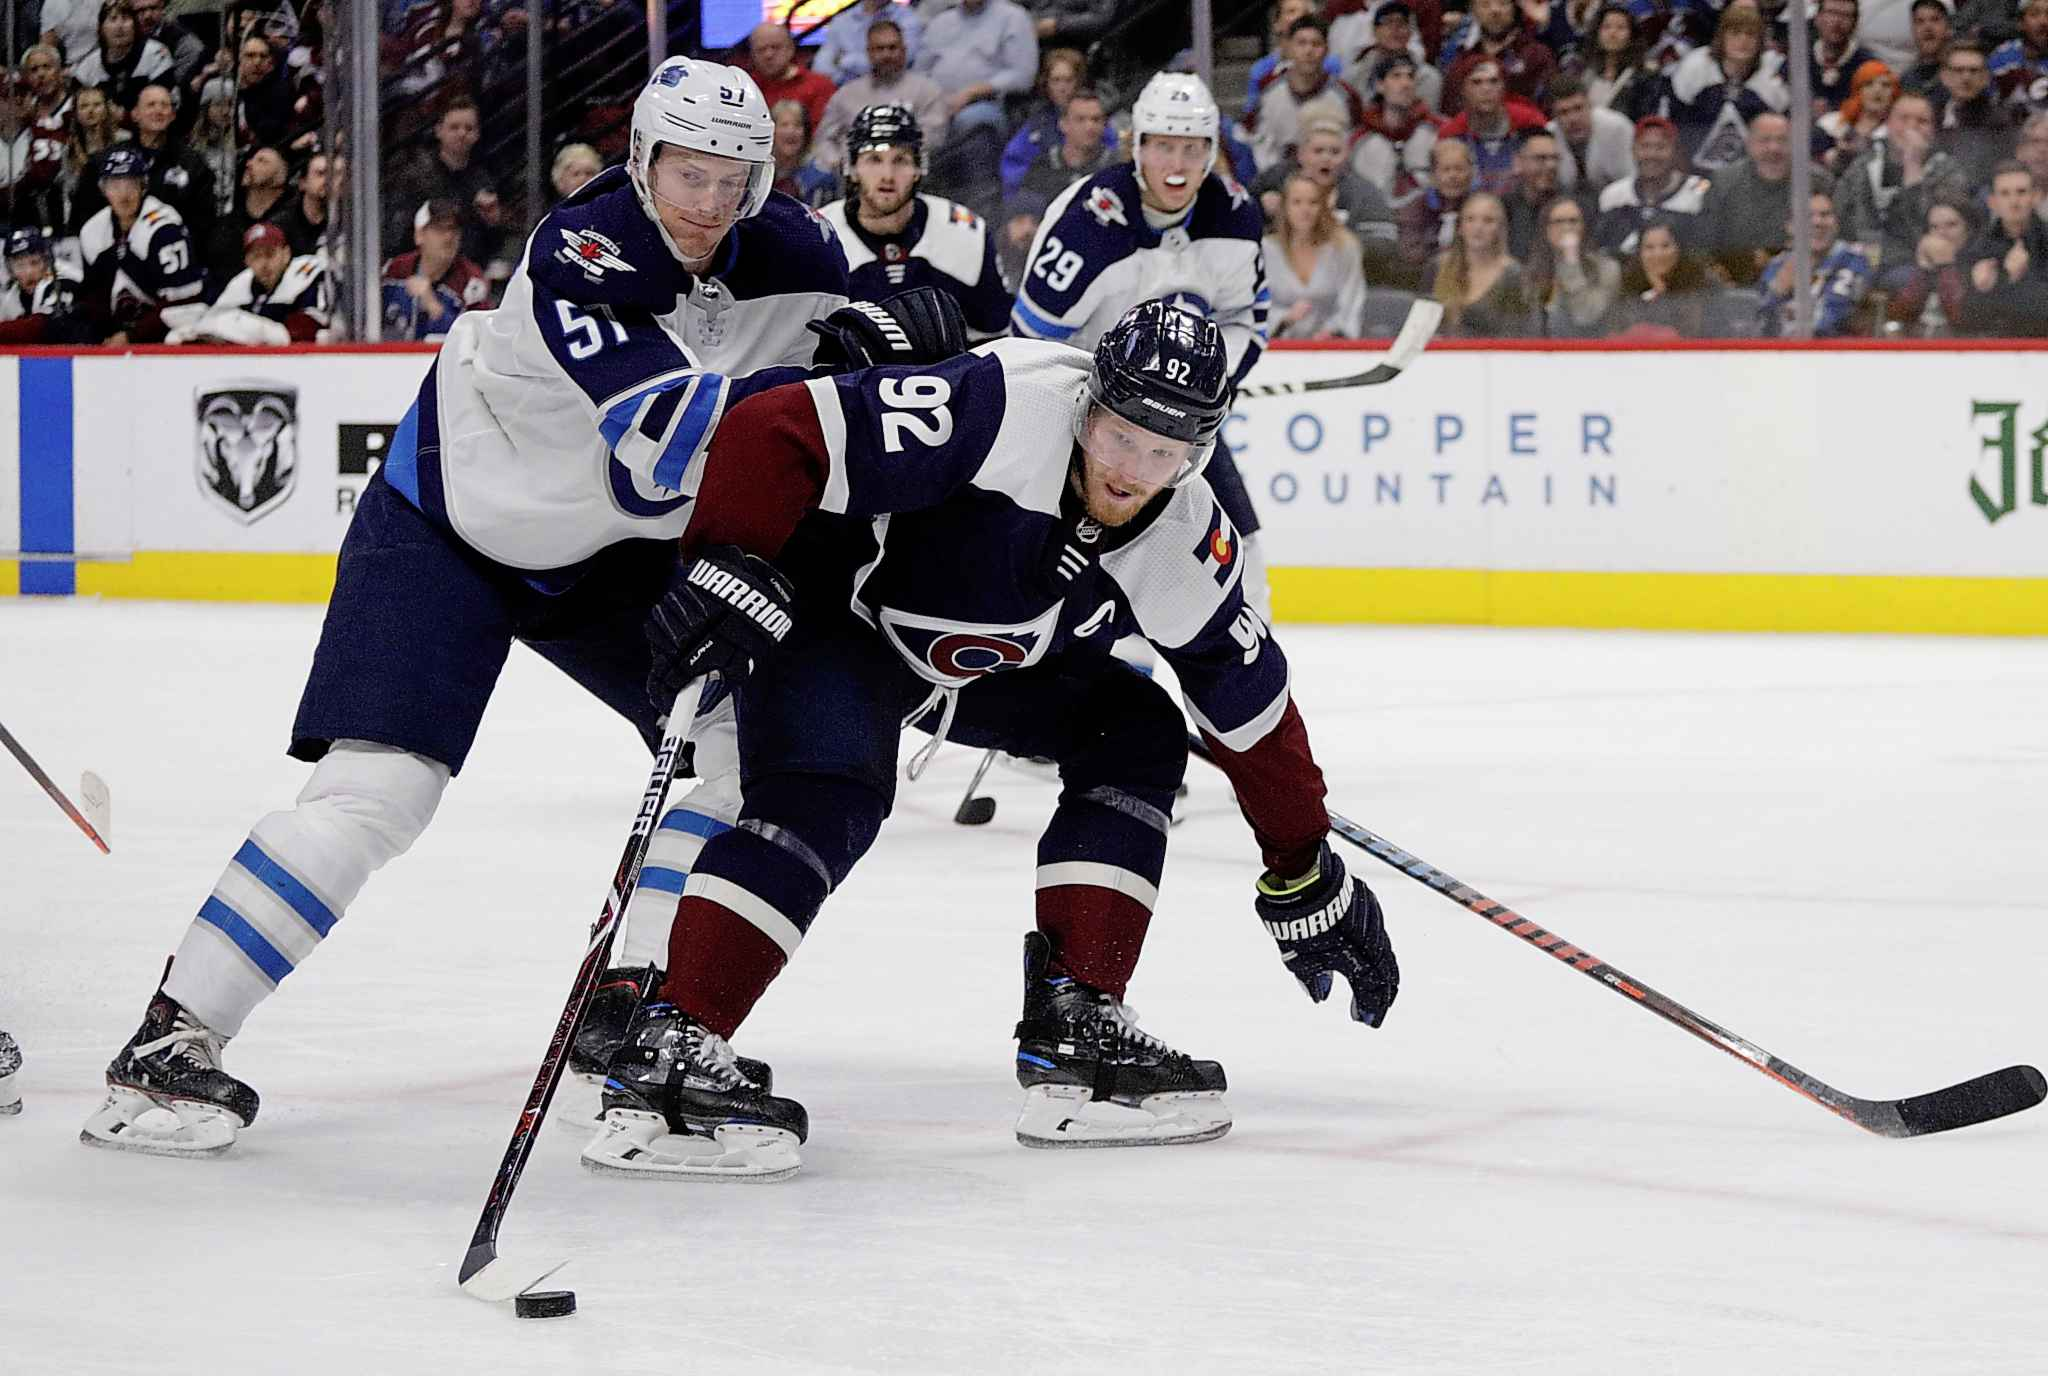 Colorado Avalanche left wing Gabriel Landeskog (92) carries the puck past Winnipeg Jets defenseman Tyler Myers (57) during the second period of an NHL hockey game in Denver, Thursday, April 4, 2019. (AP Photo/Joe Mahoney)